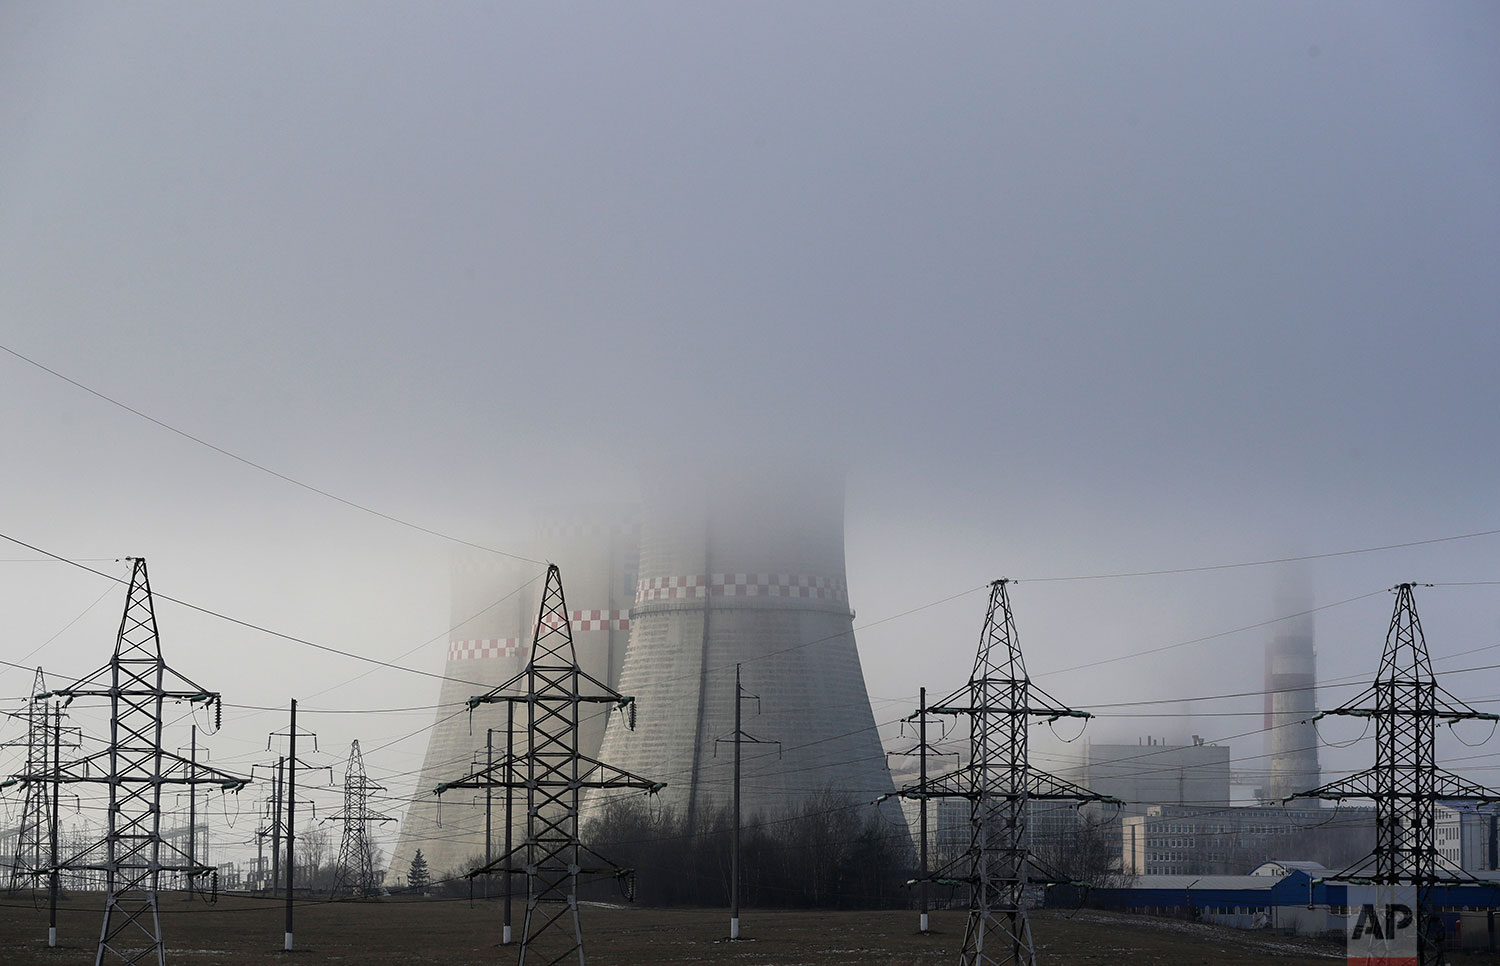 In this Thursday, Dec. 6, 2018 photo, a power plant is partially obscured by fog in Minsk, Belarus. (AP Photo/Sergei Grits)